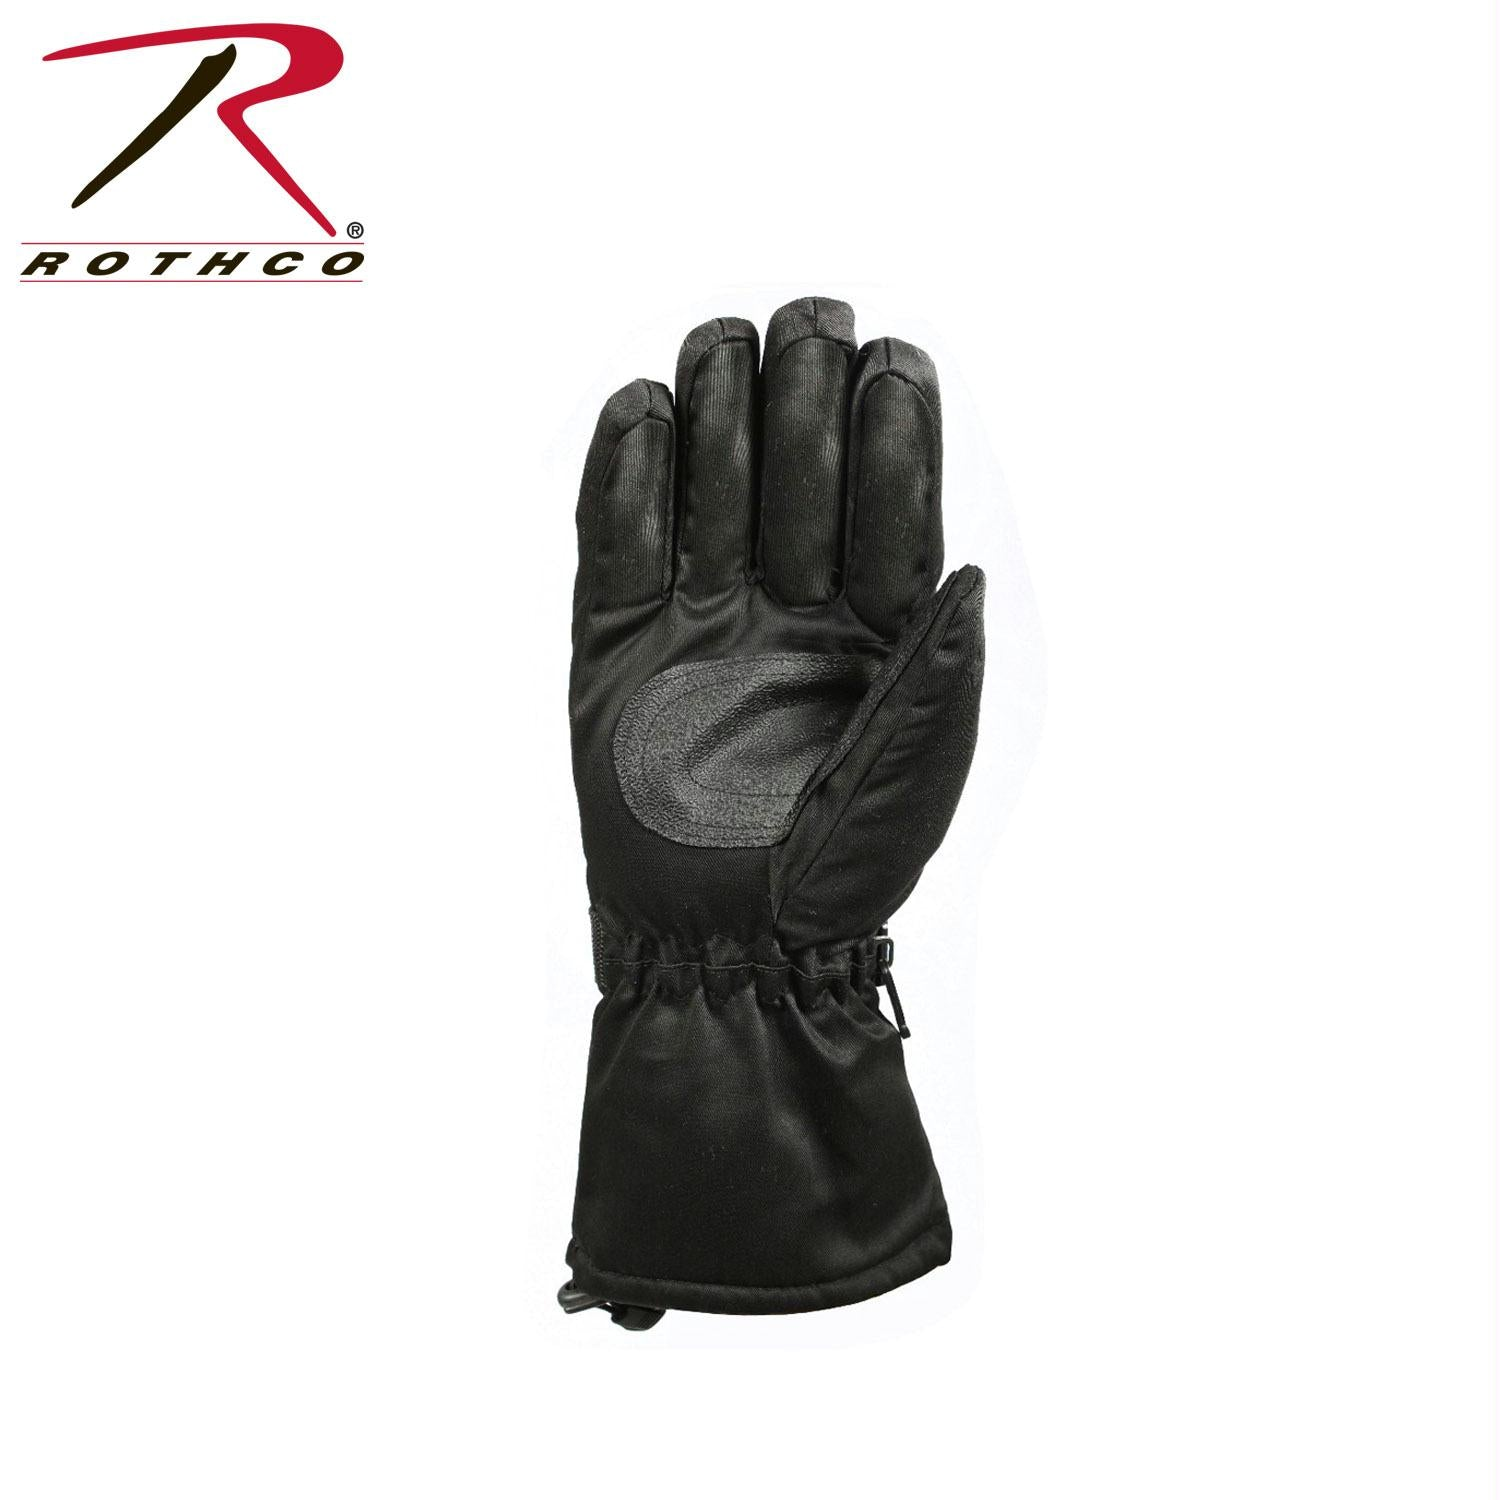 Rothco Extra-Long Insulated Gloves